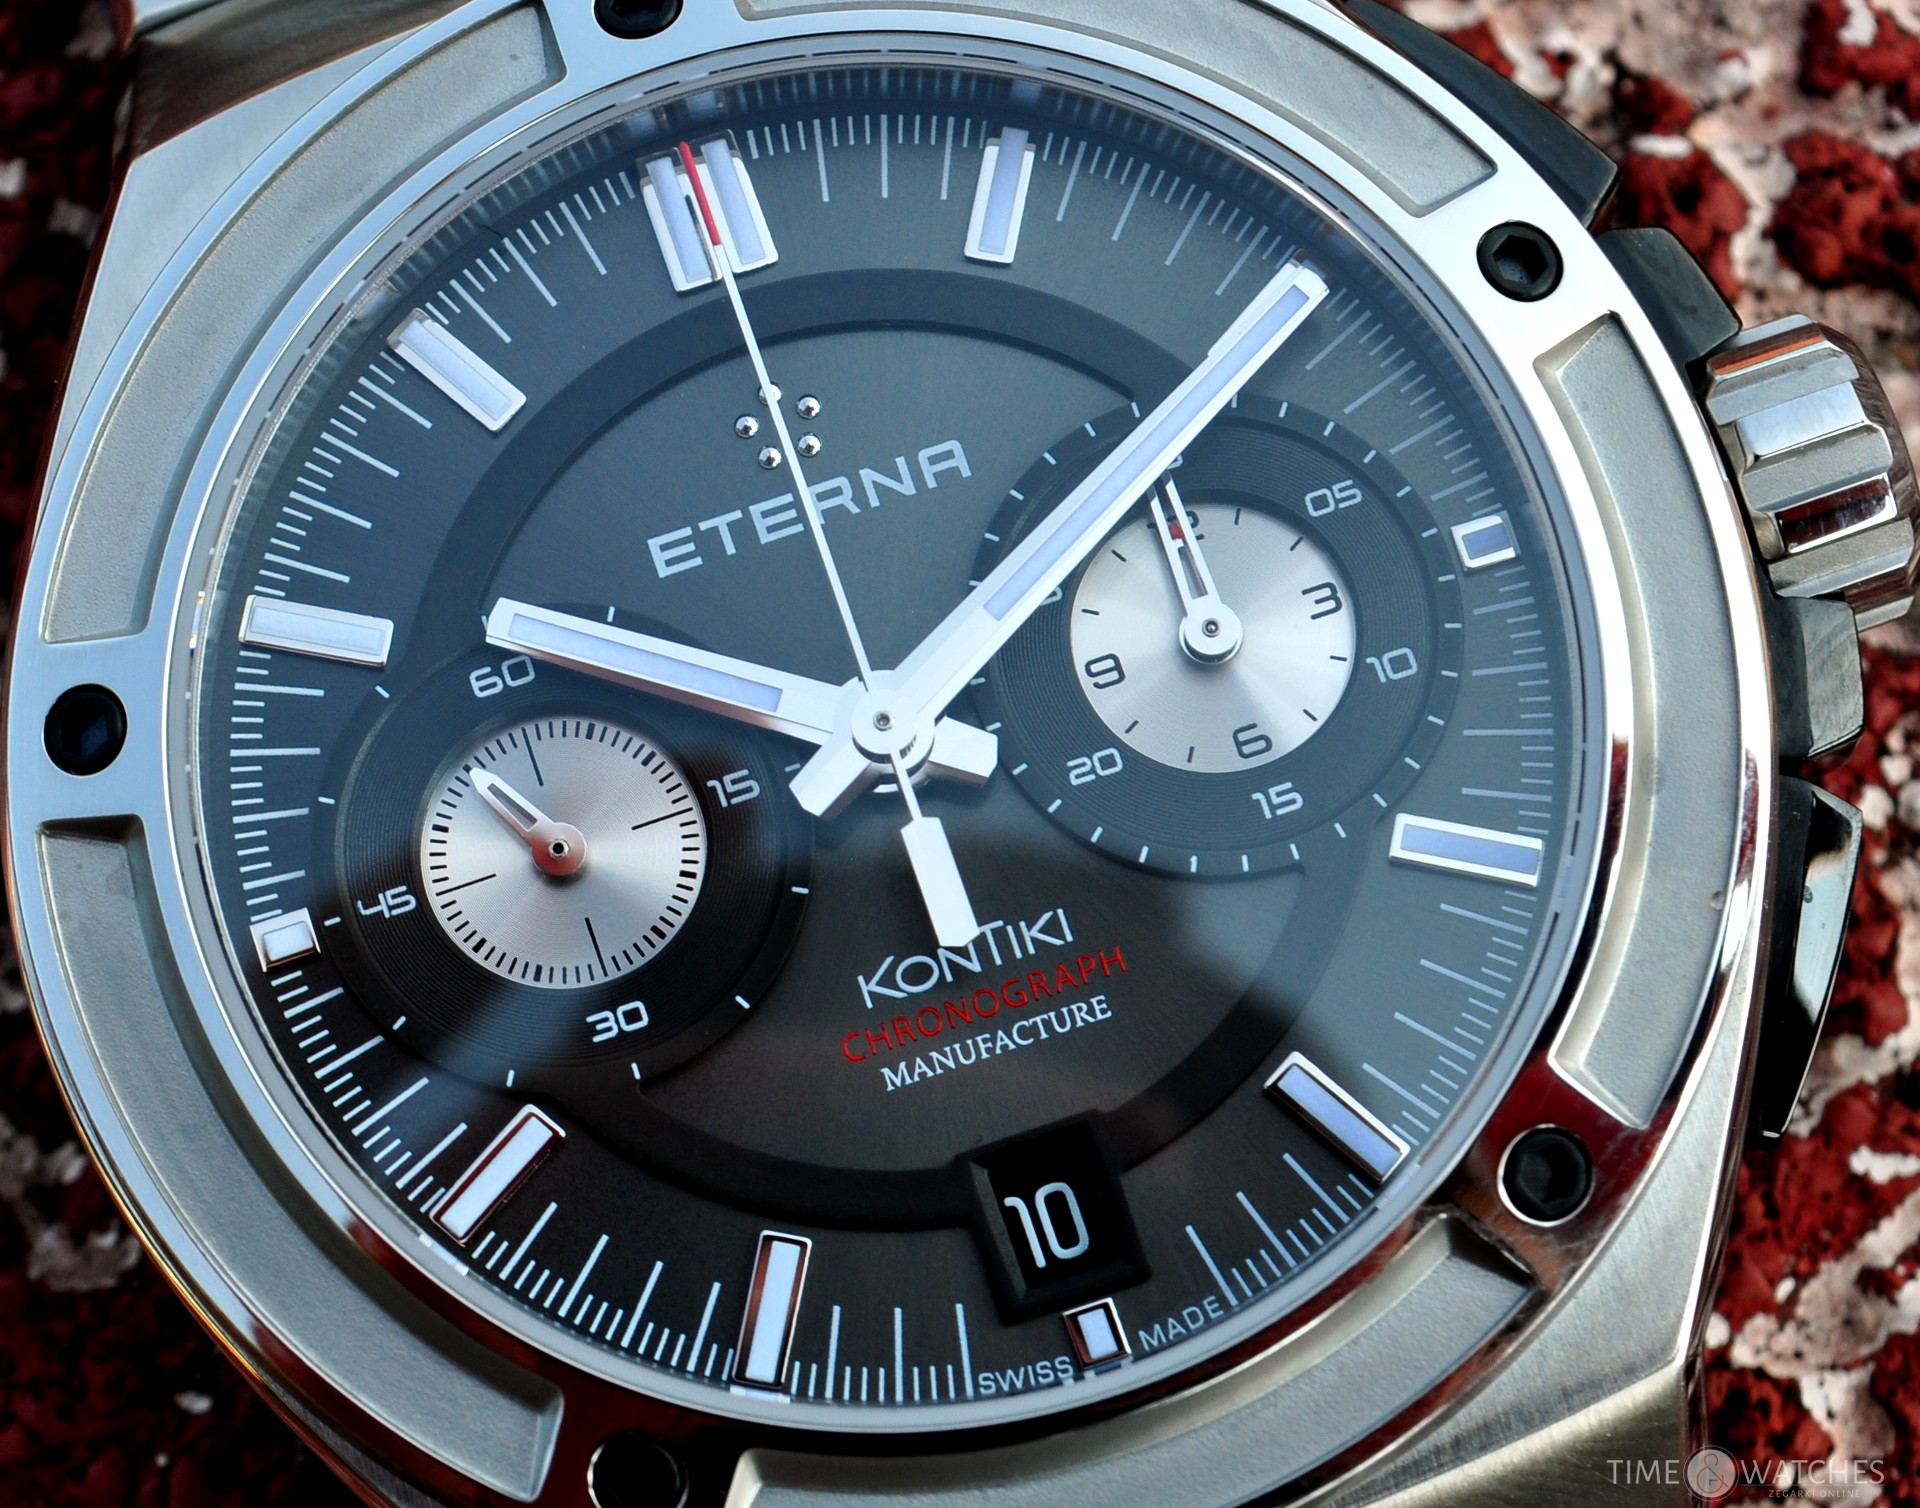 Eterna Royal Kontiki Chronograph | timeandwatches.pl